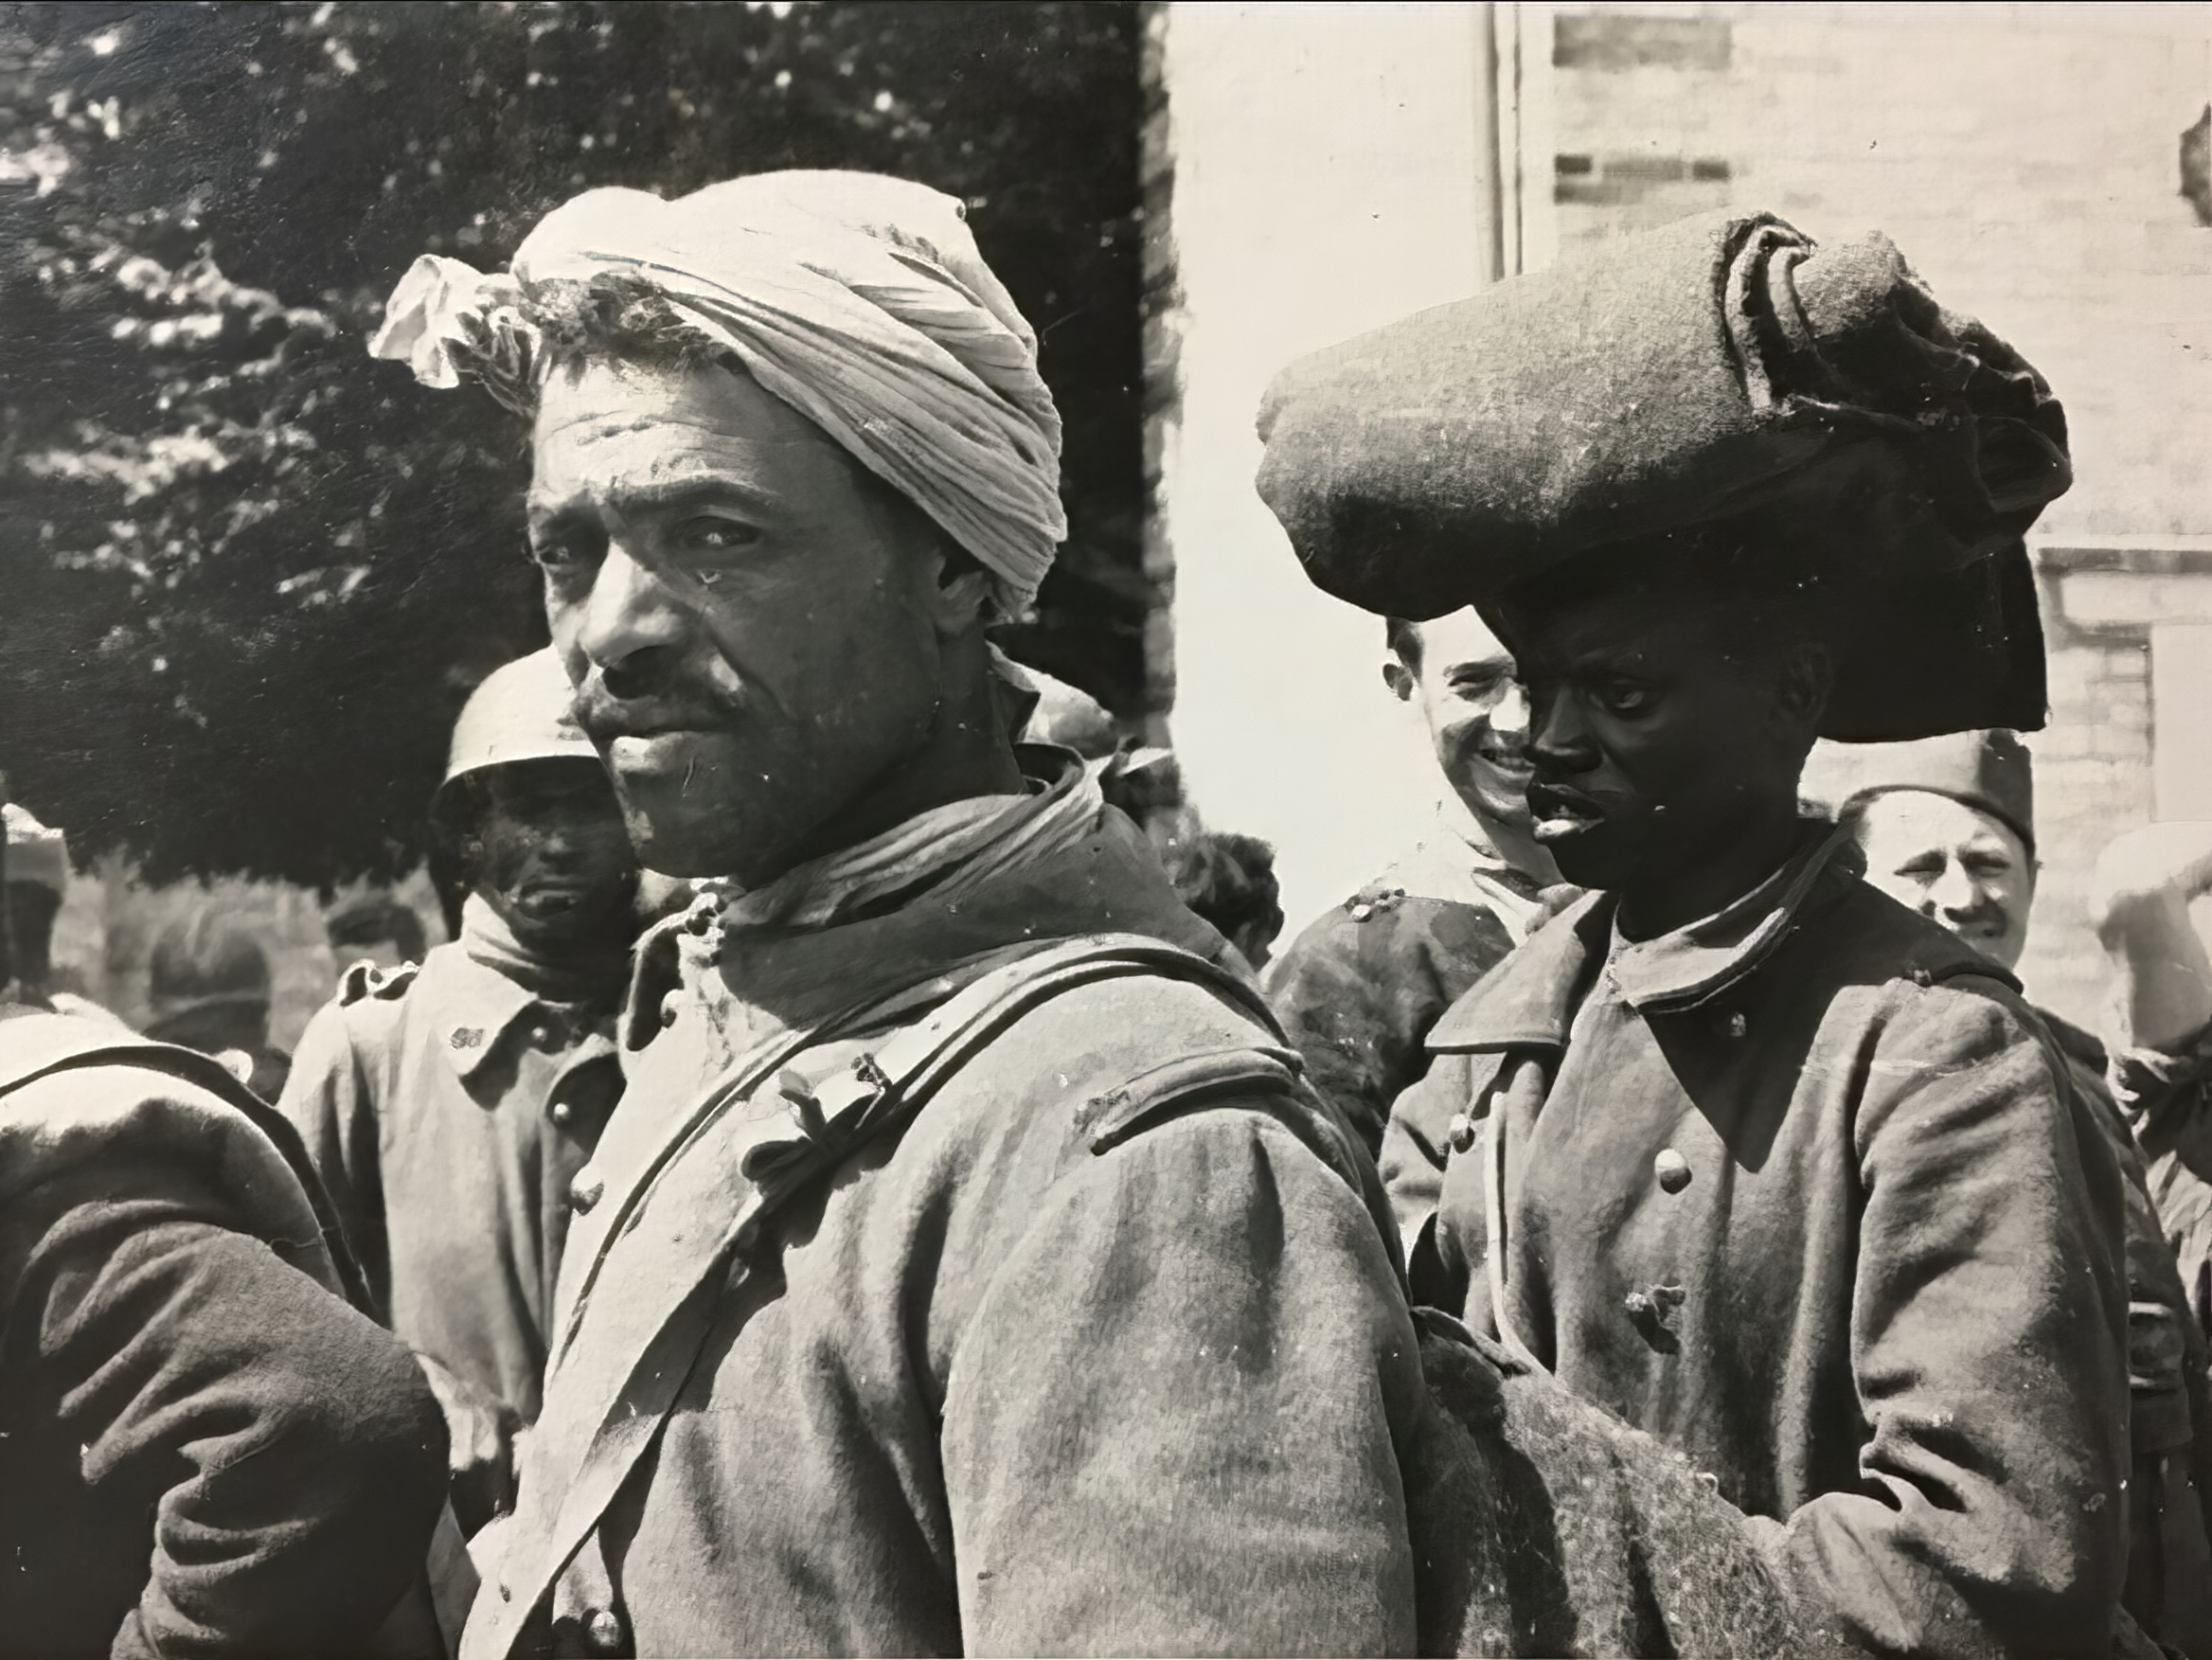 French Algerian POWs from LnAbt(H) mot 7 Algeria being interned after Frances capitulation 25th June 1940 ebay 02